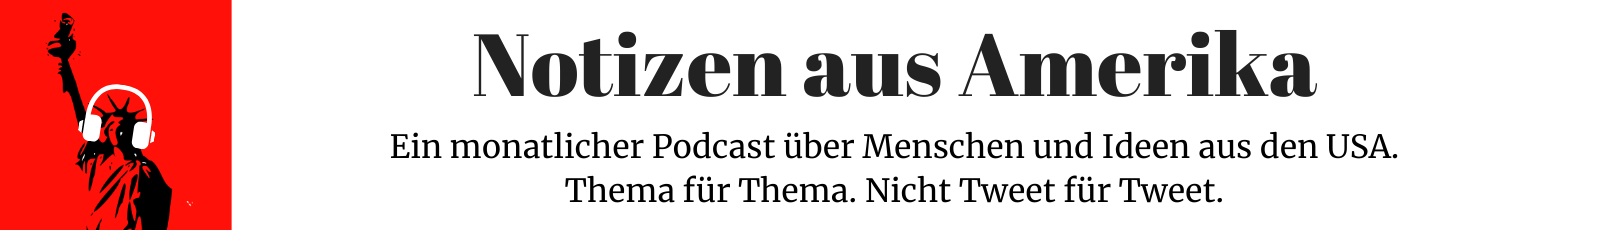 Notizen aus Amerika Podcast